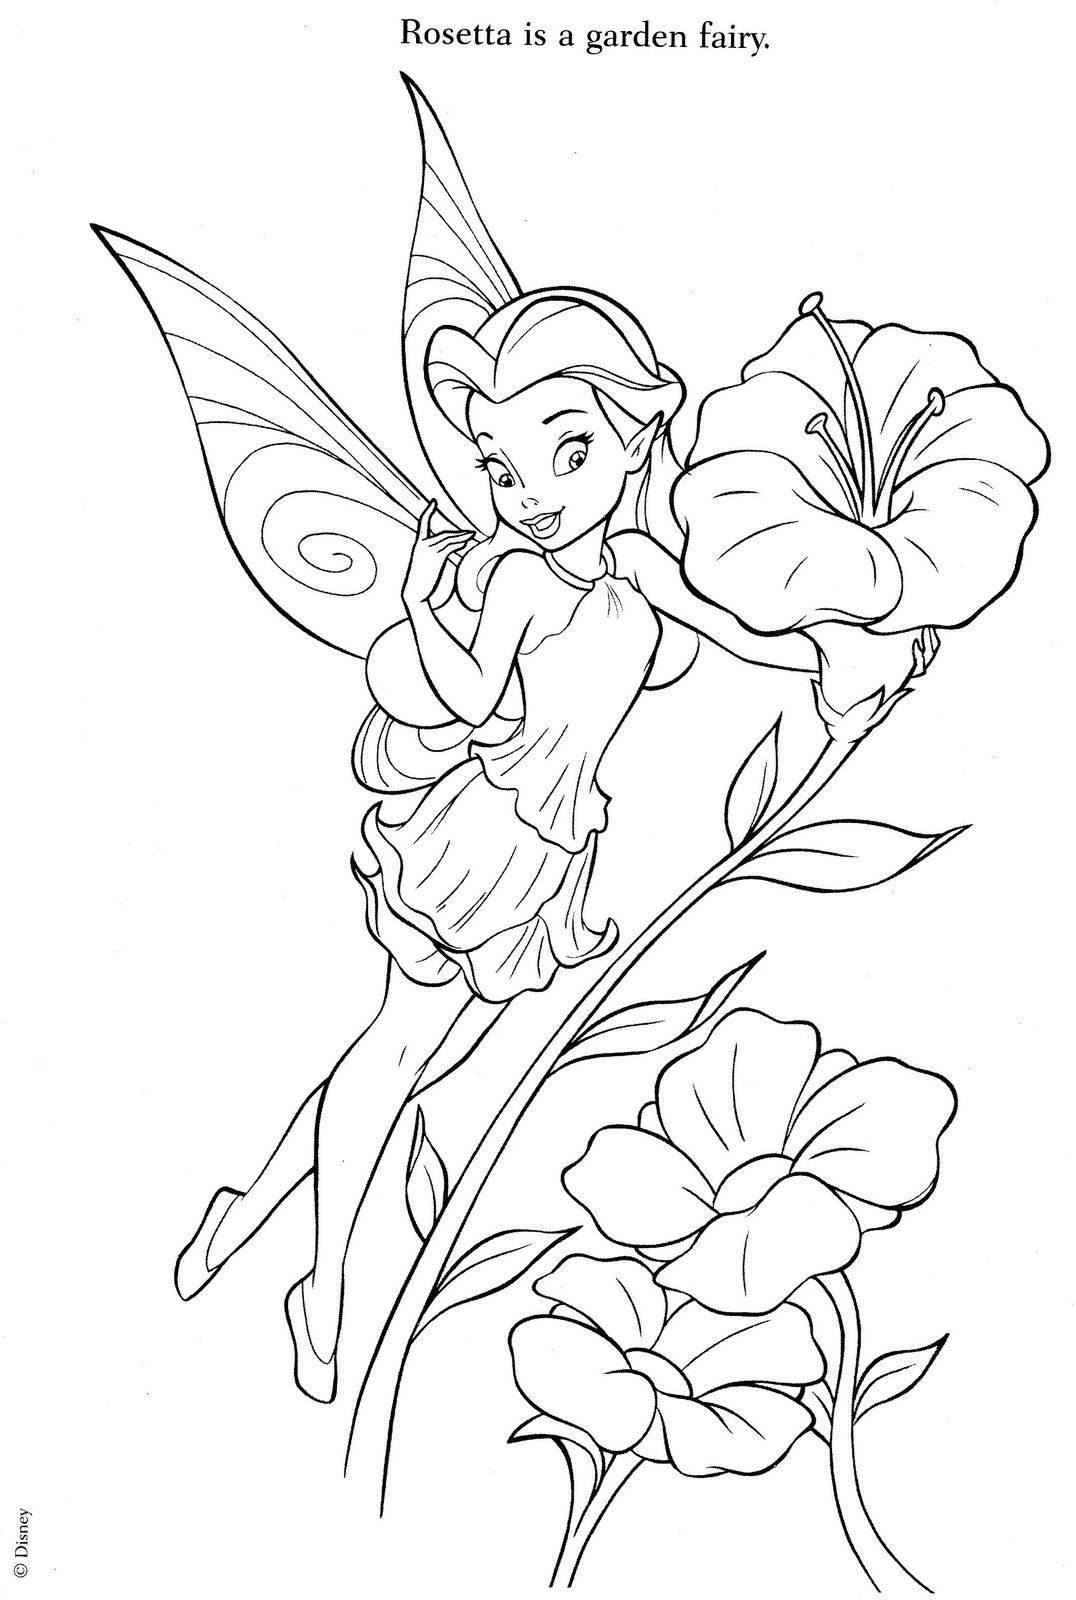 tinker bell coloring pages tinkerbell coloring pages fairy coloring pages fairy coloring. Black Bedroom Furniture Sets. Home Design Ideas